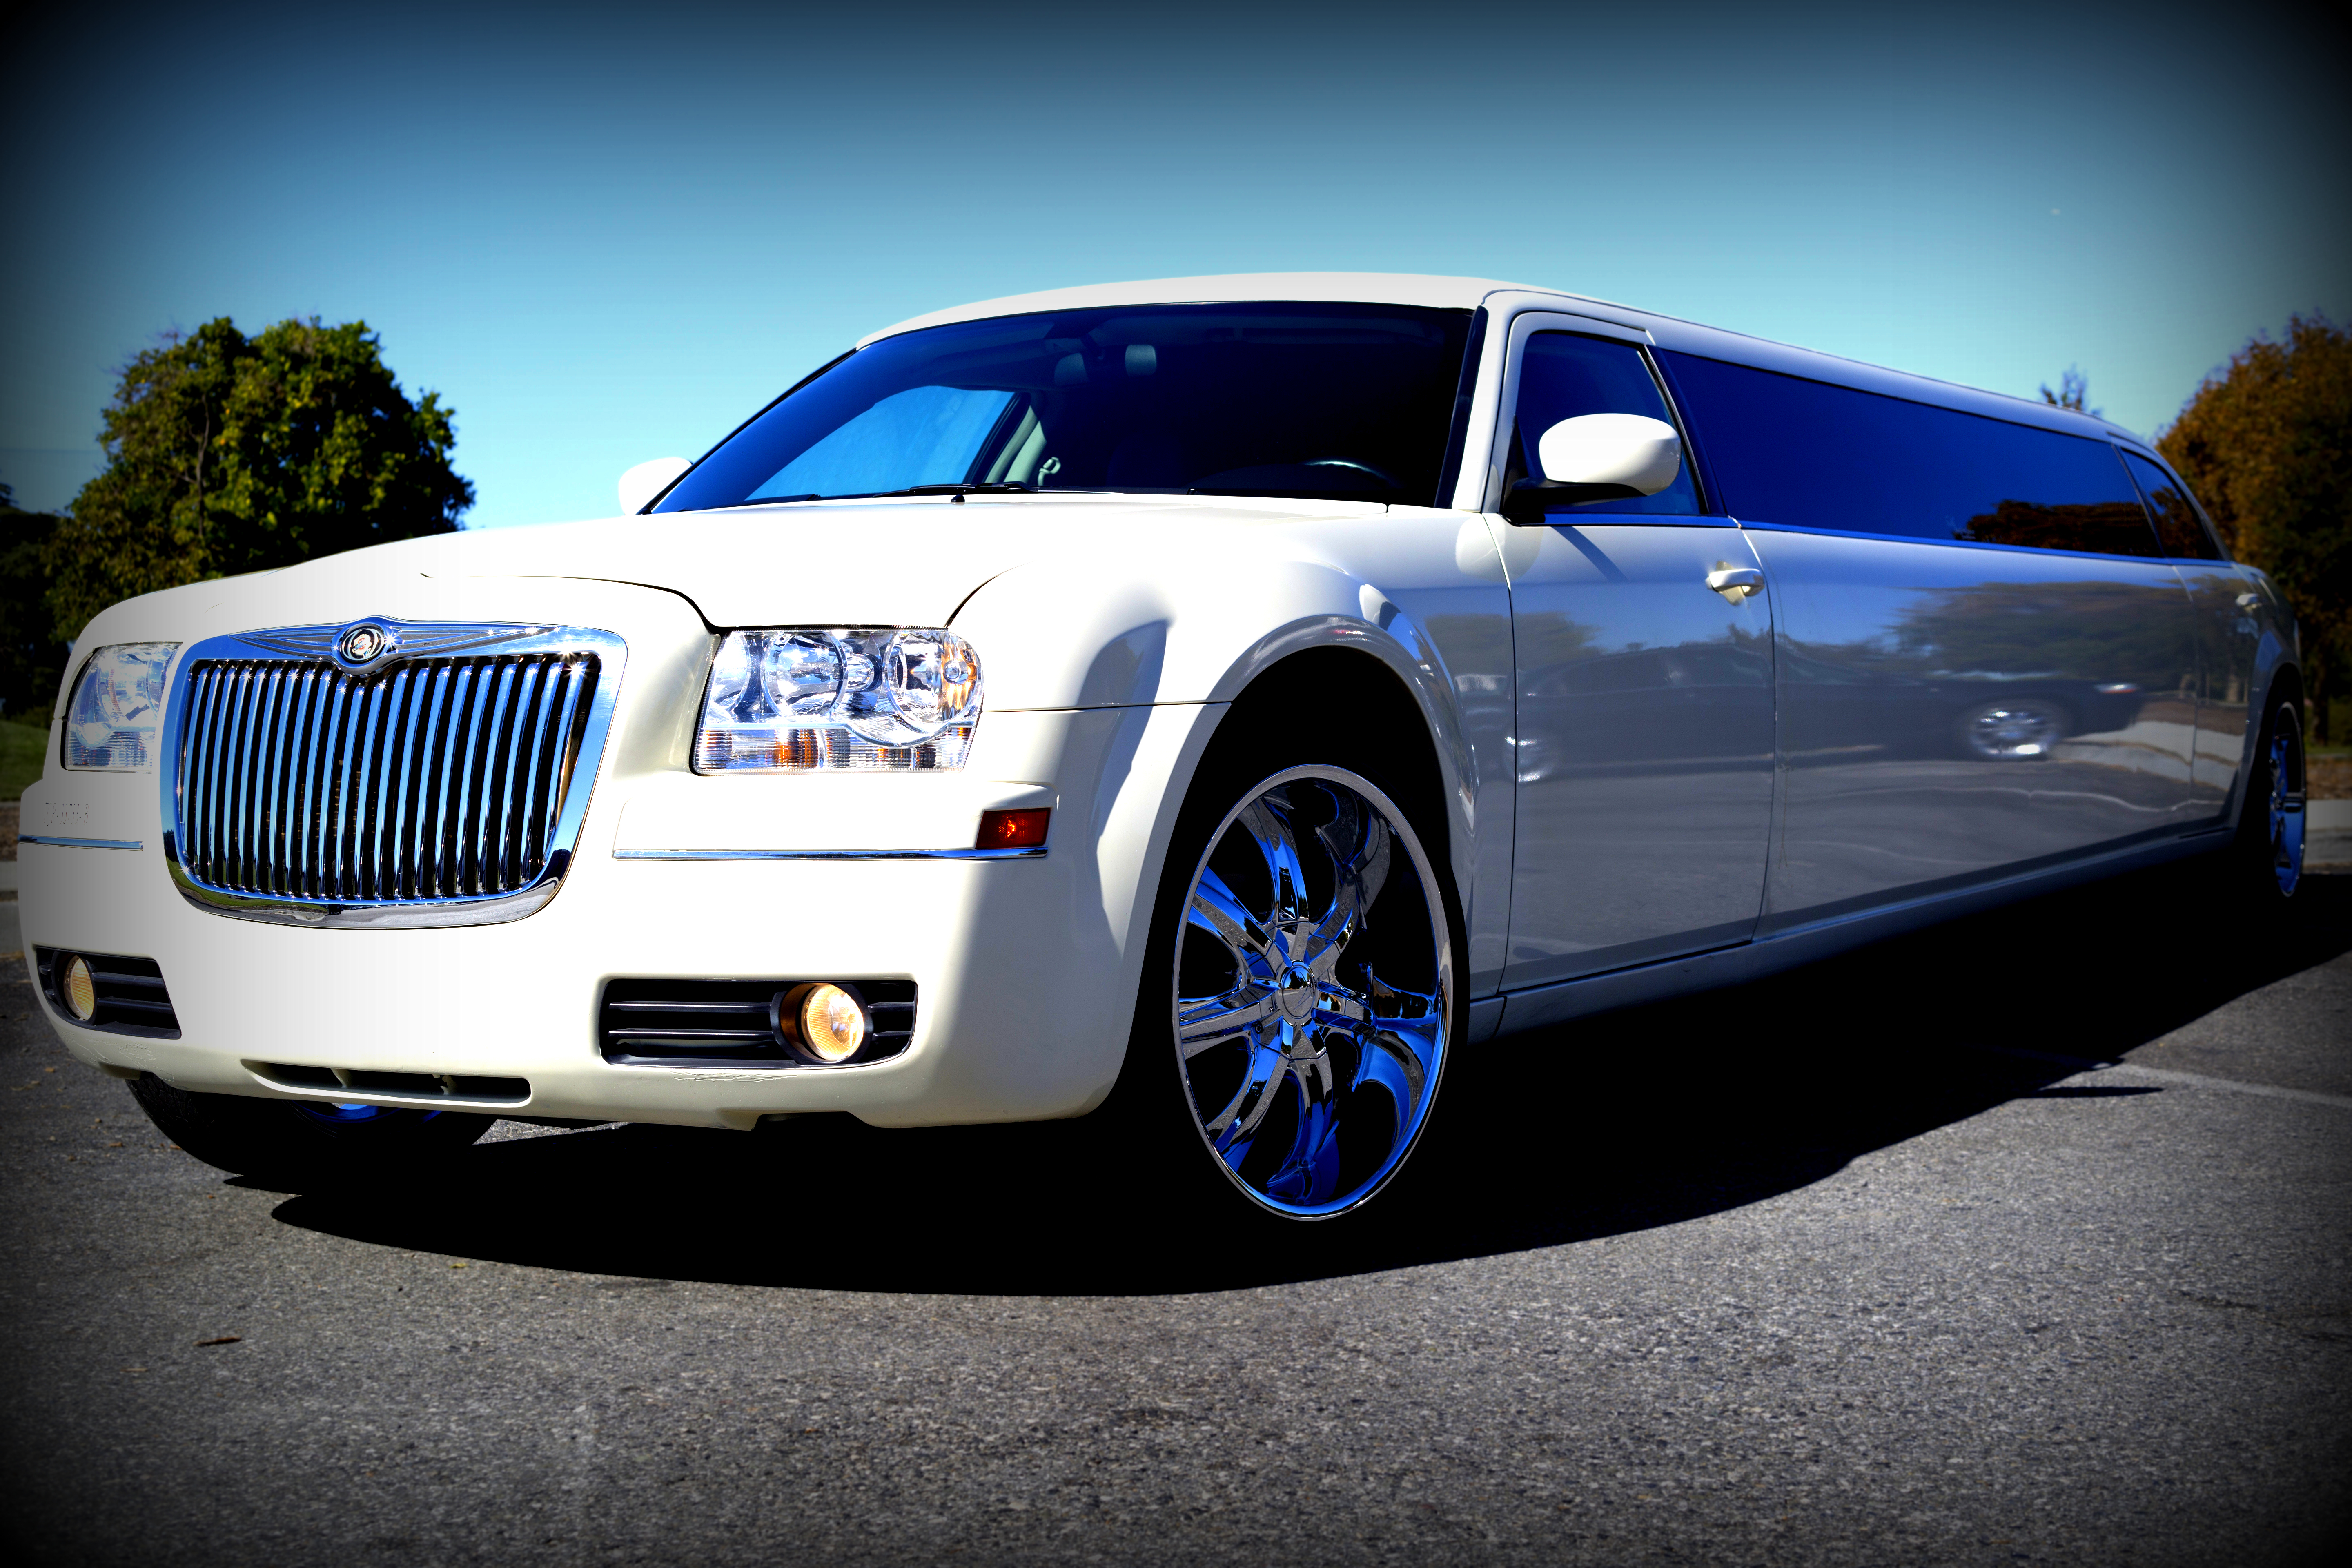 Chrysler Limo Limousines Of Connecticut - Chrysler 300 limo